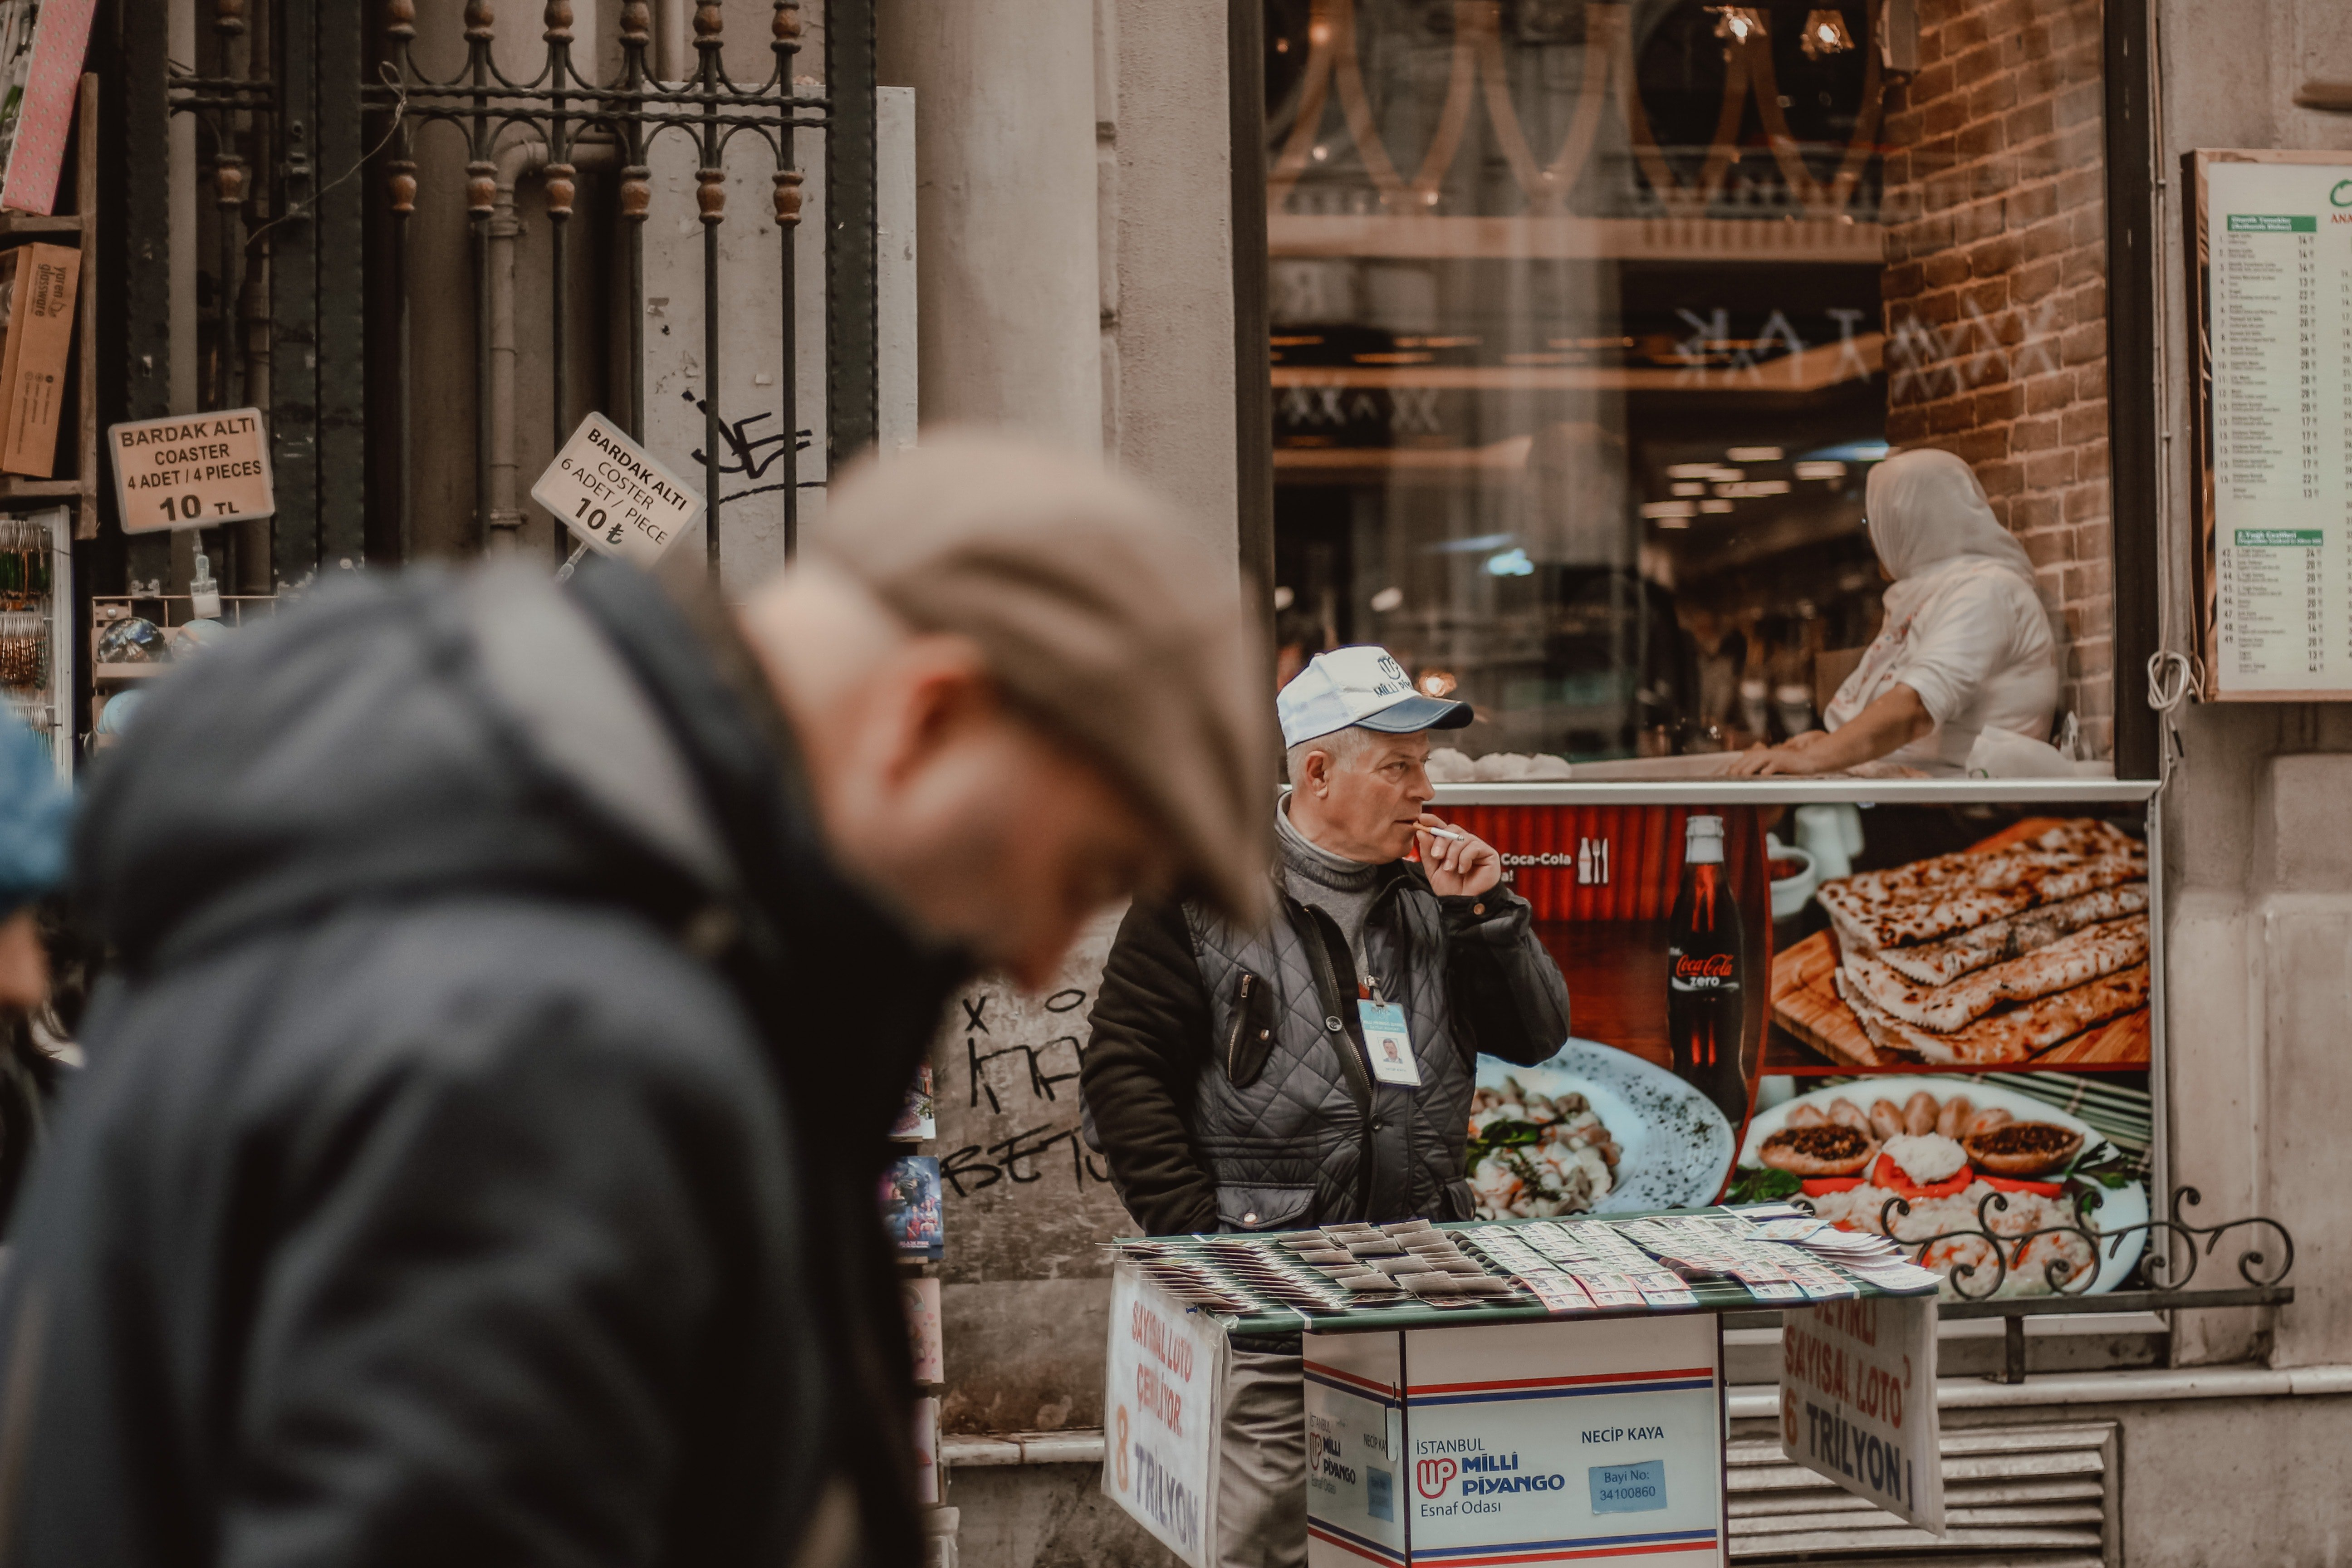 An image of an elderly delivery man in front of a stall   Photo: Pexels